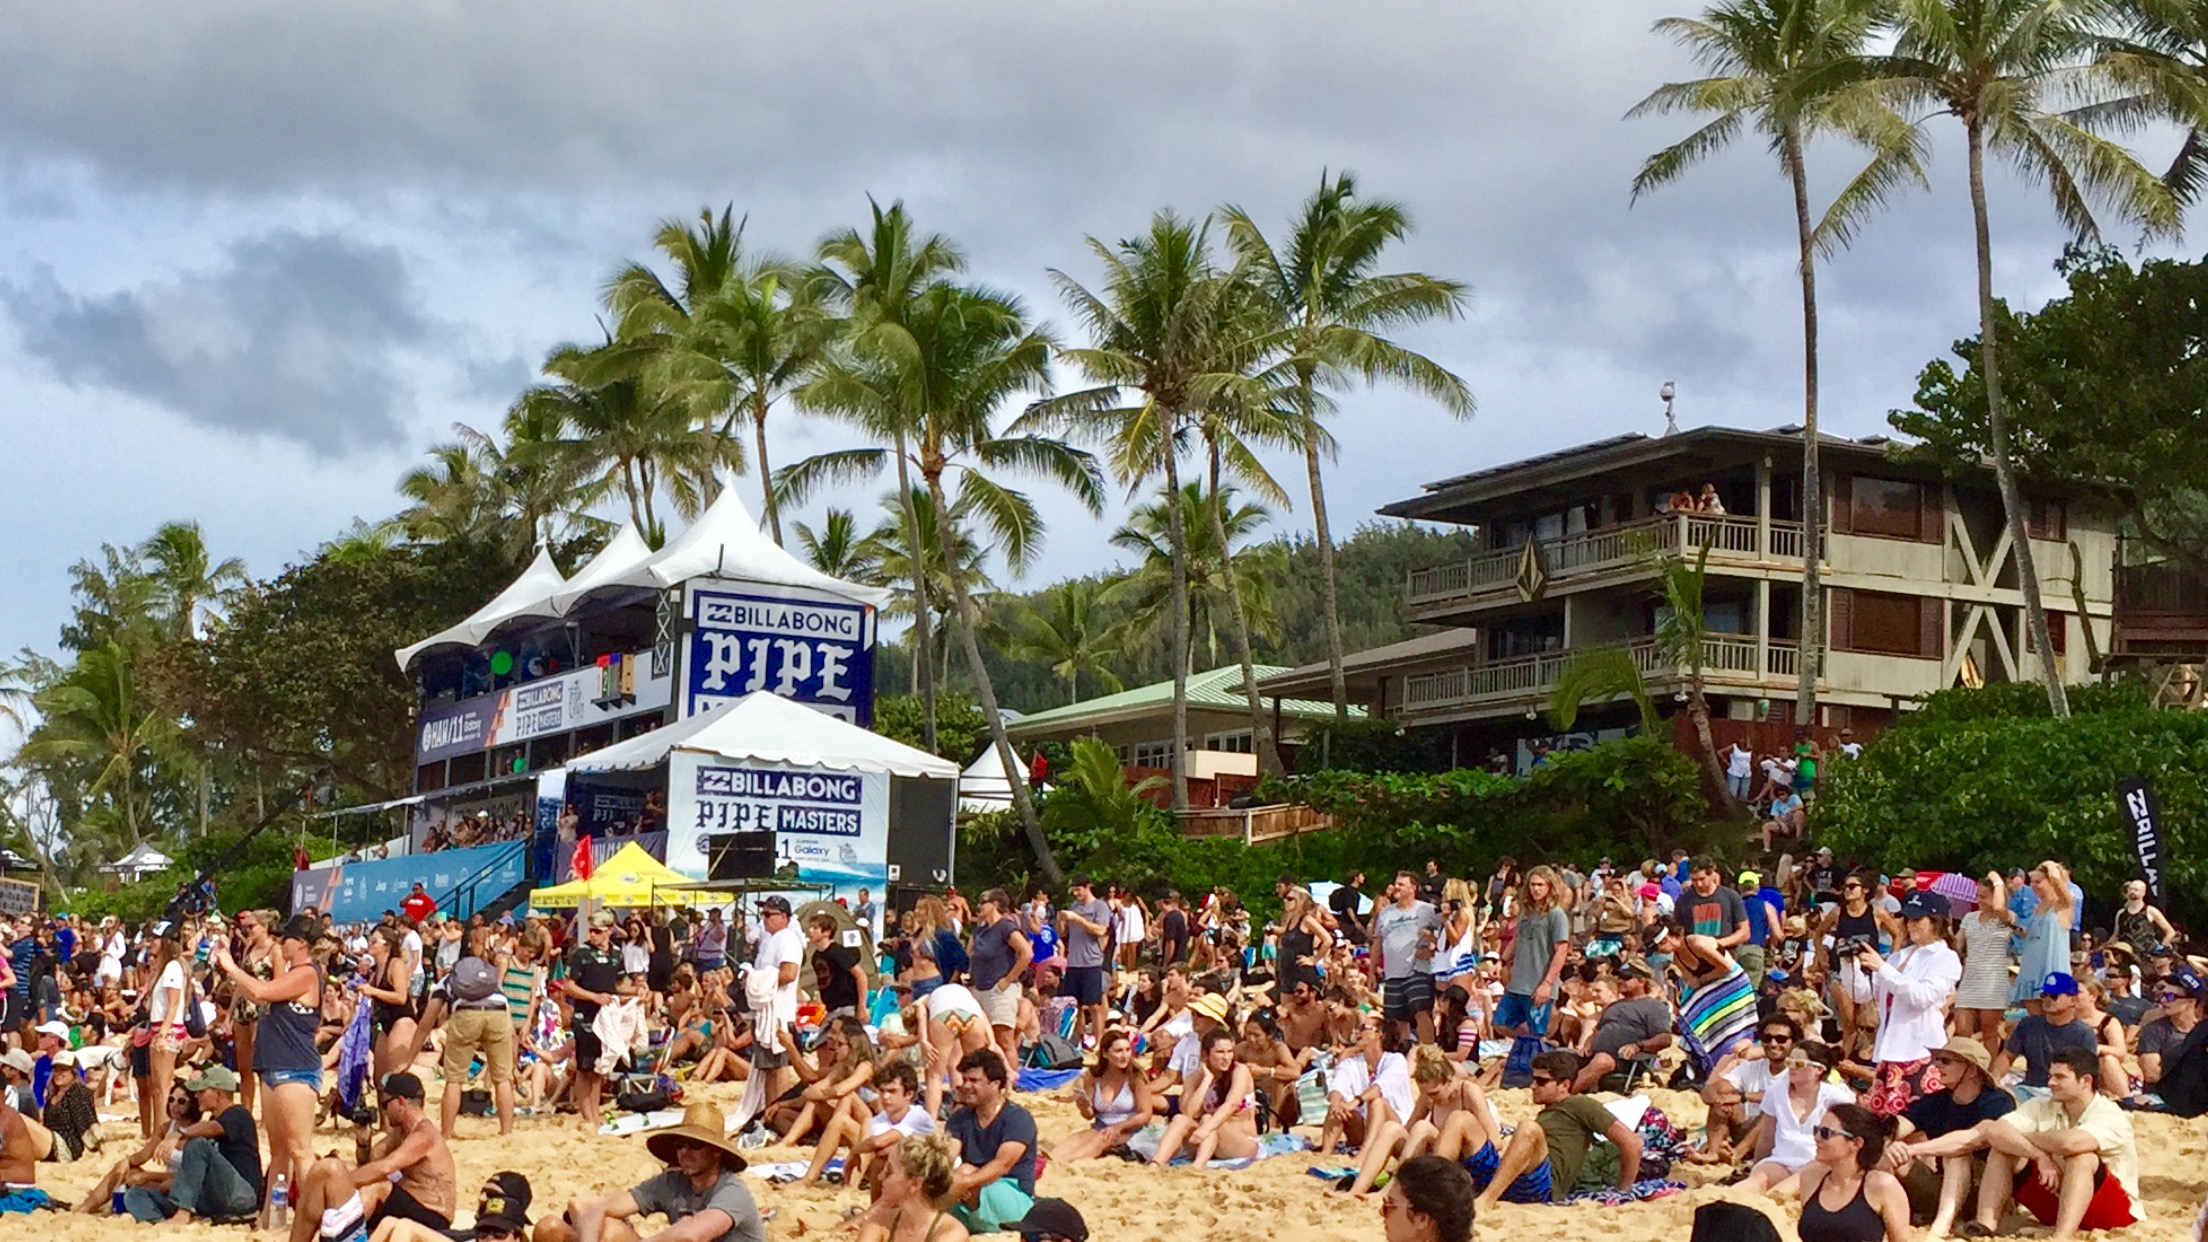 Le site du Billabong PIPE Masters 2016